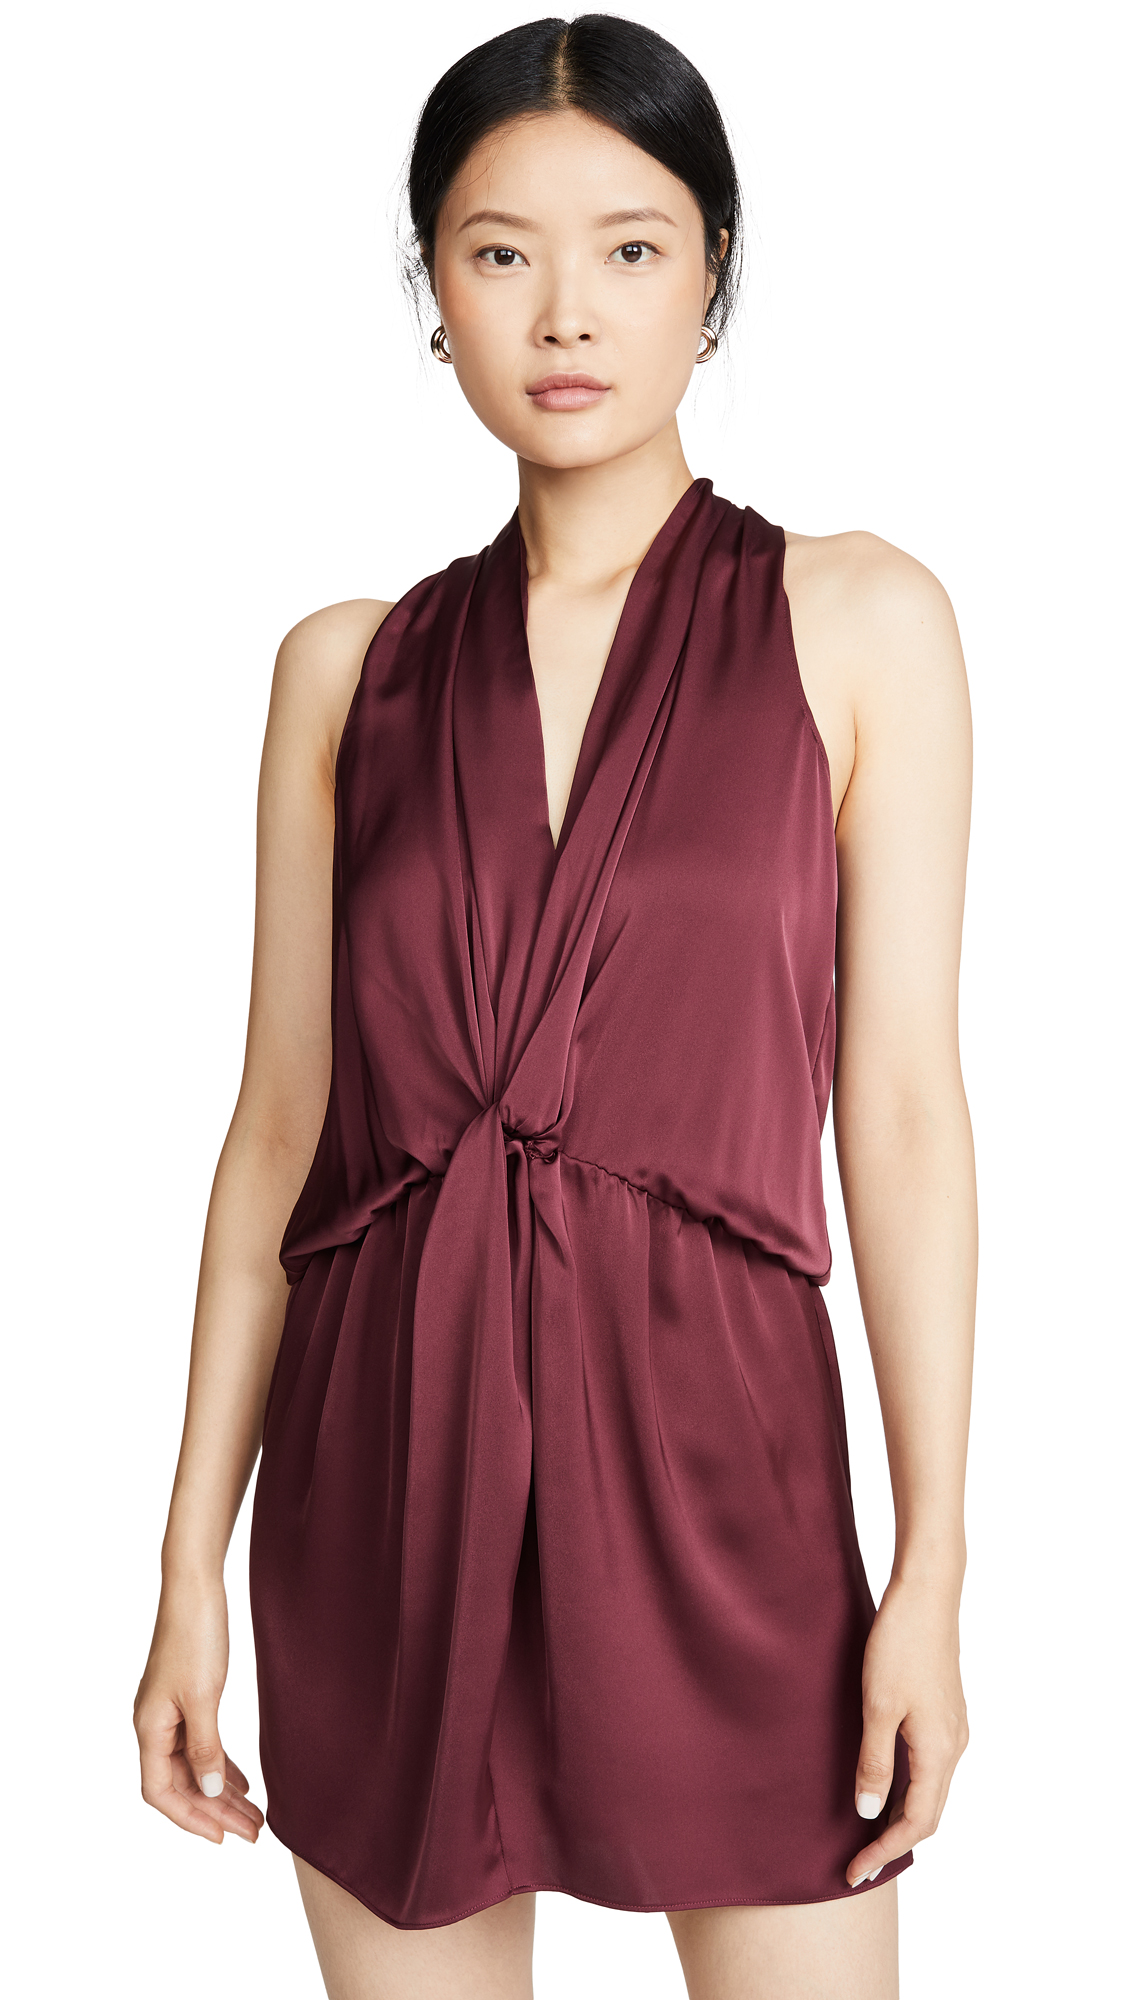 Ramy Brook Marie Dress - 30% Off Sale